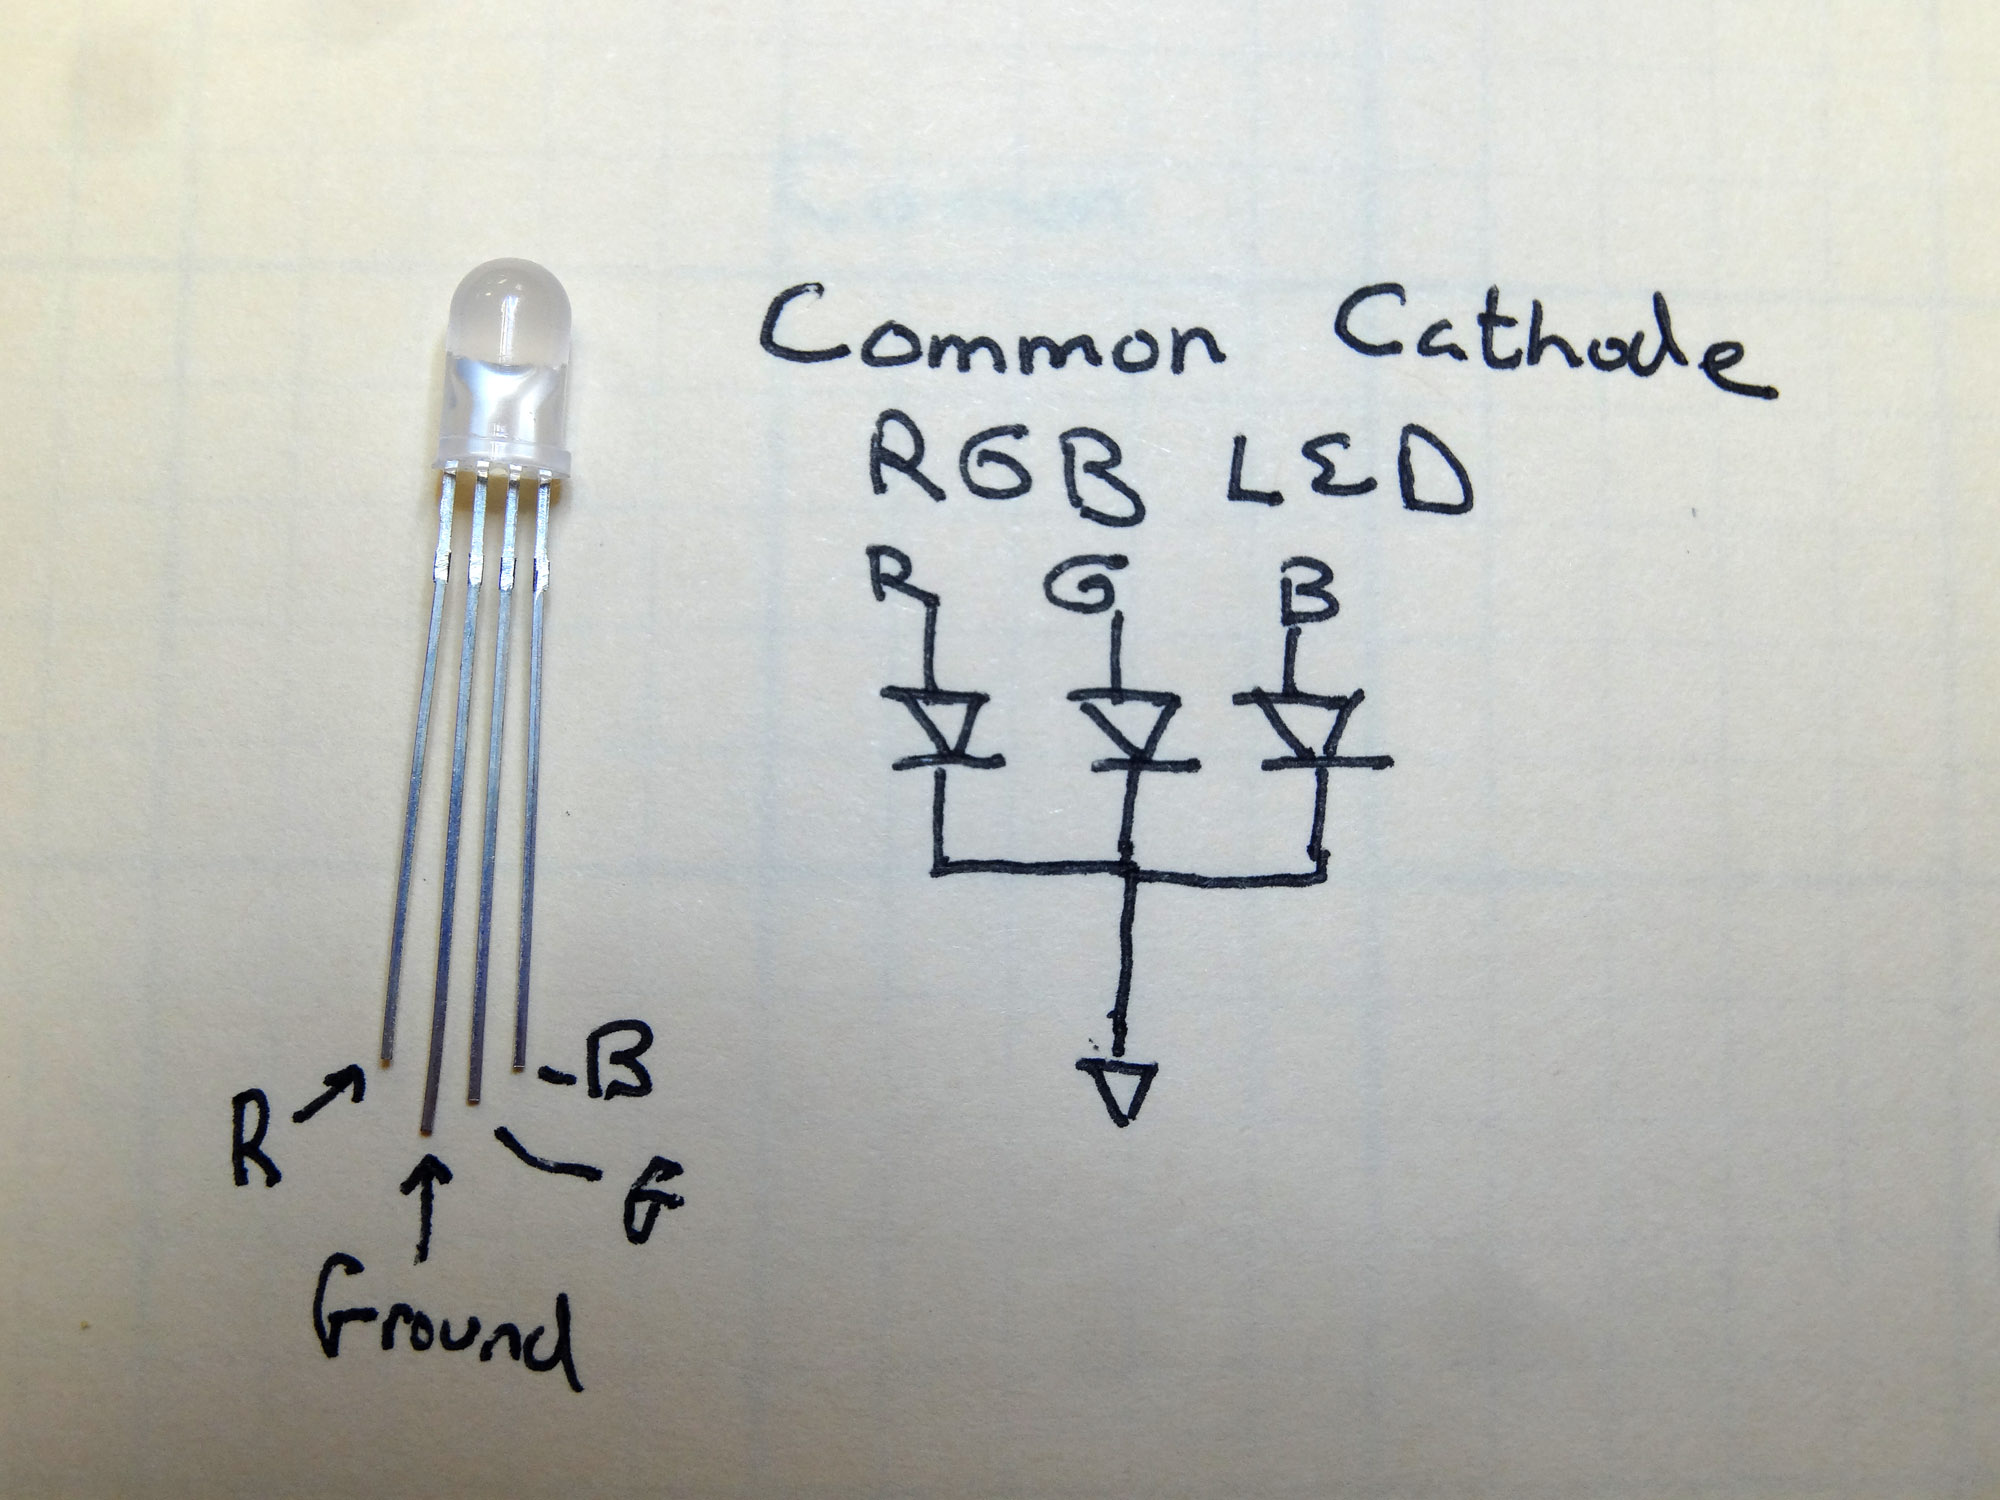 Common Cathode Rgb Led Arduino Circuit Technology Tutorials For Simple To Control From An